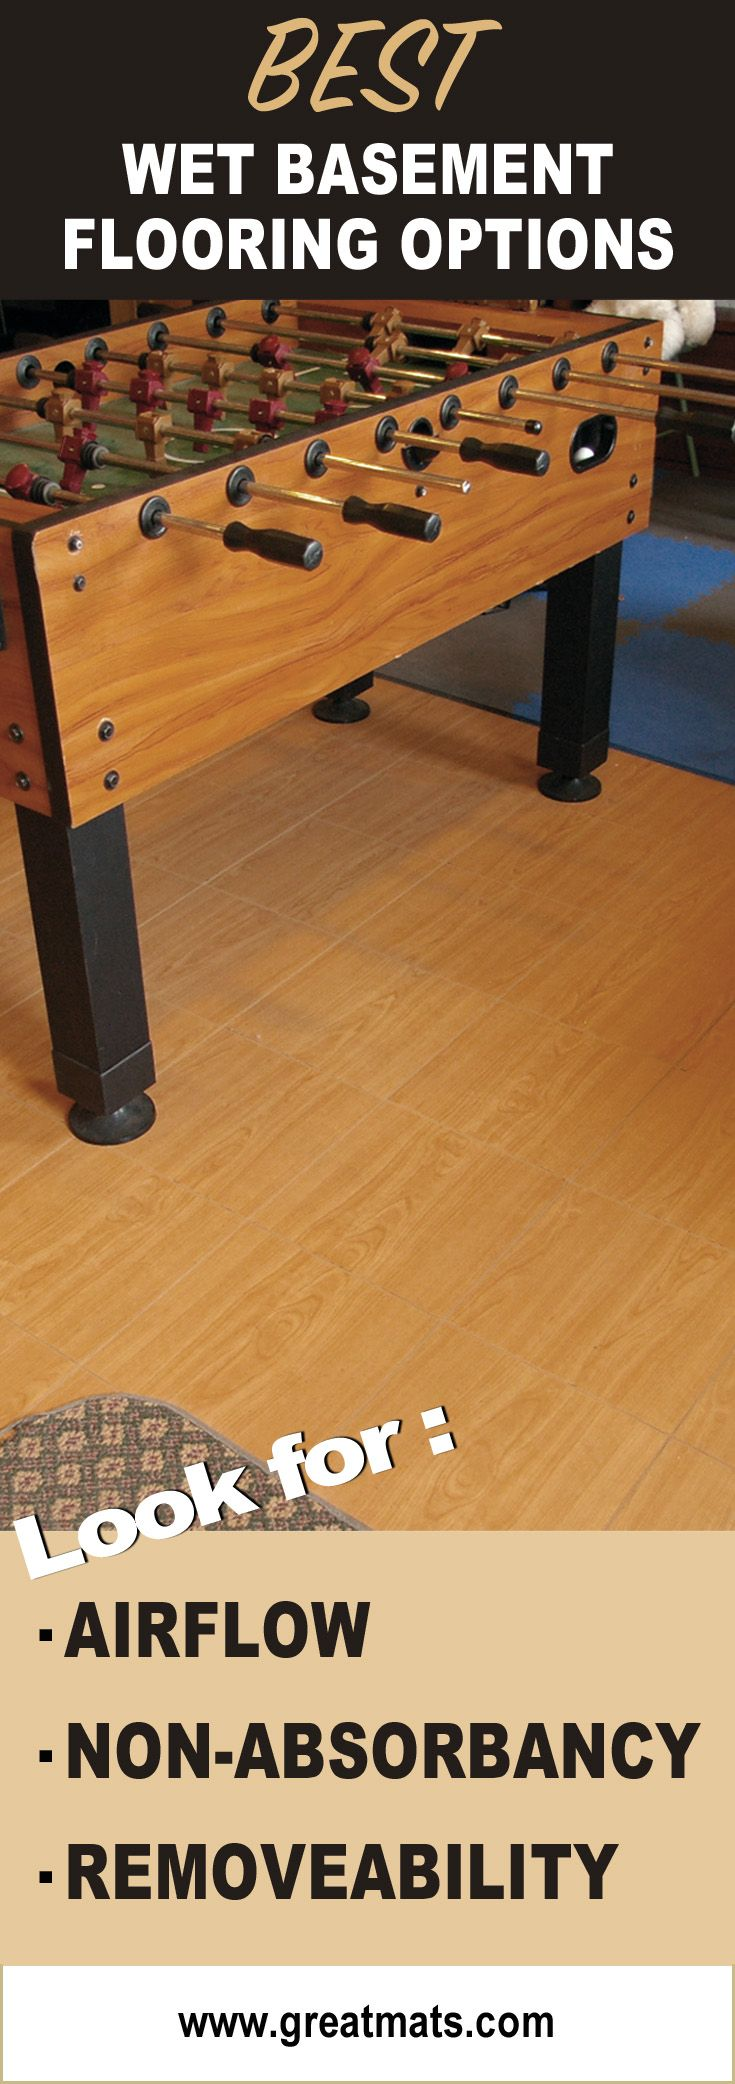 Best flooring options for damp basements